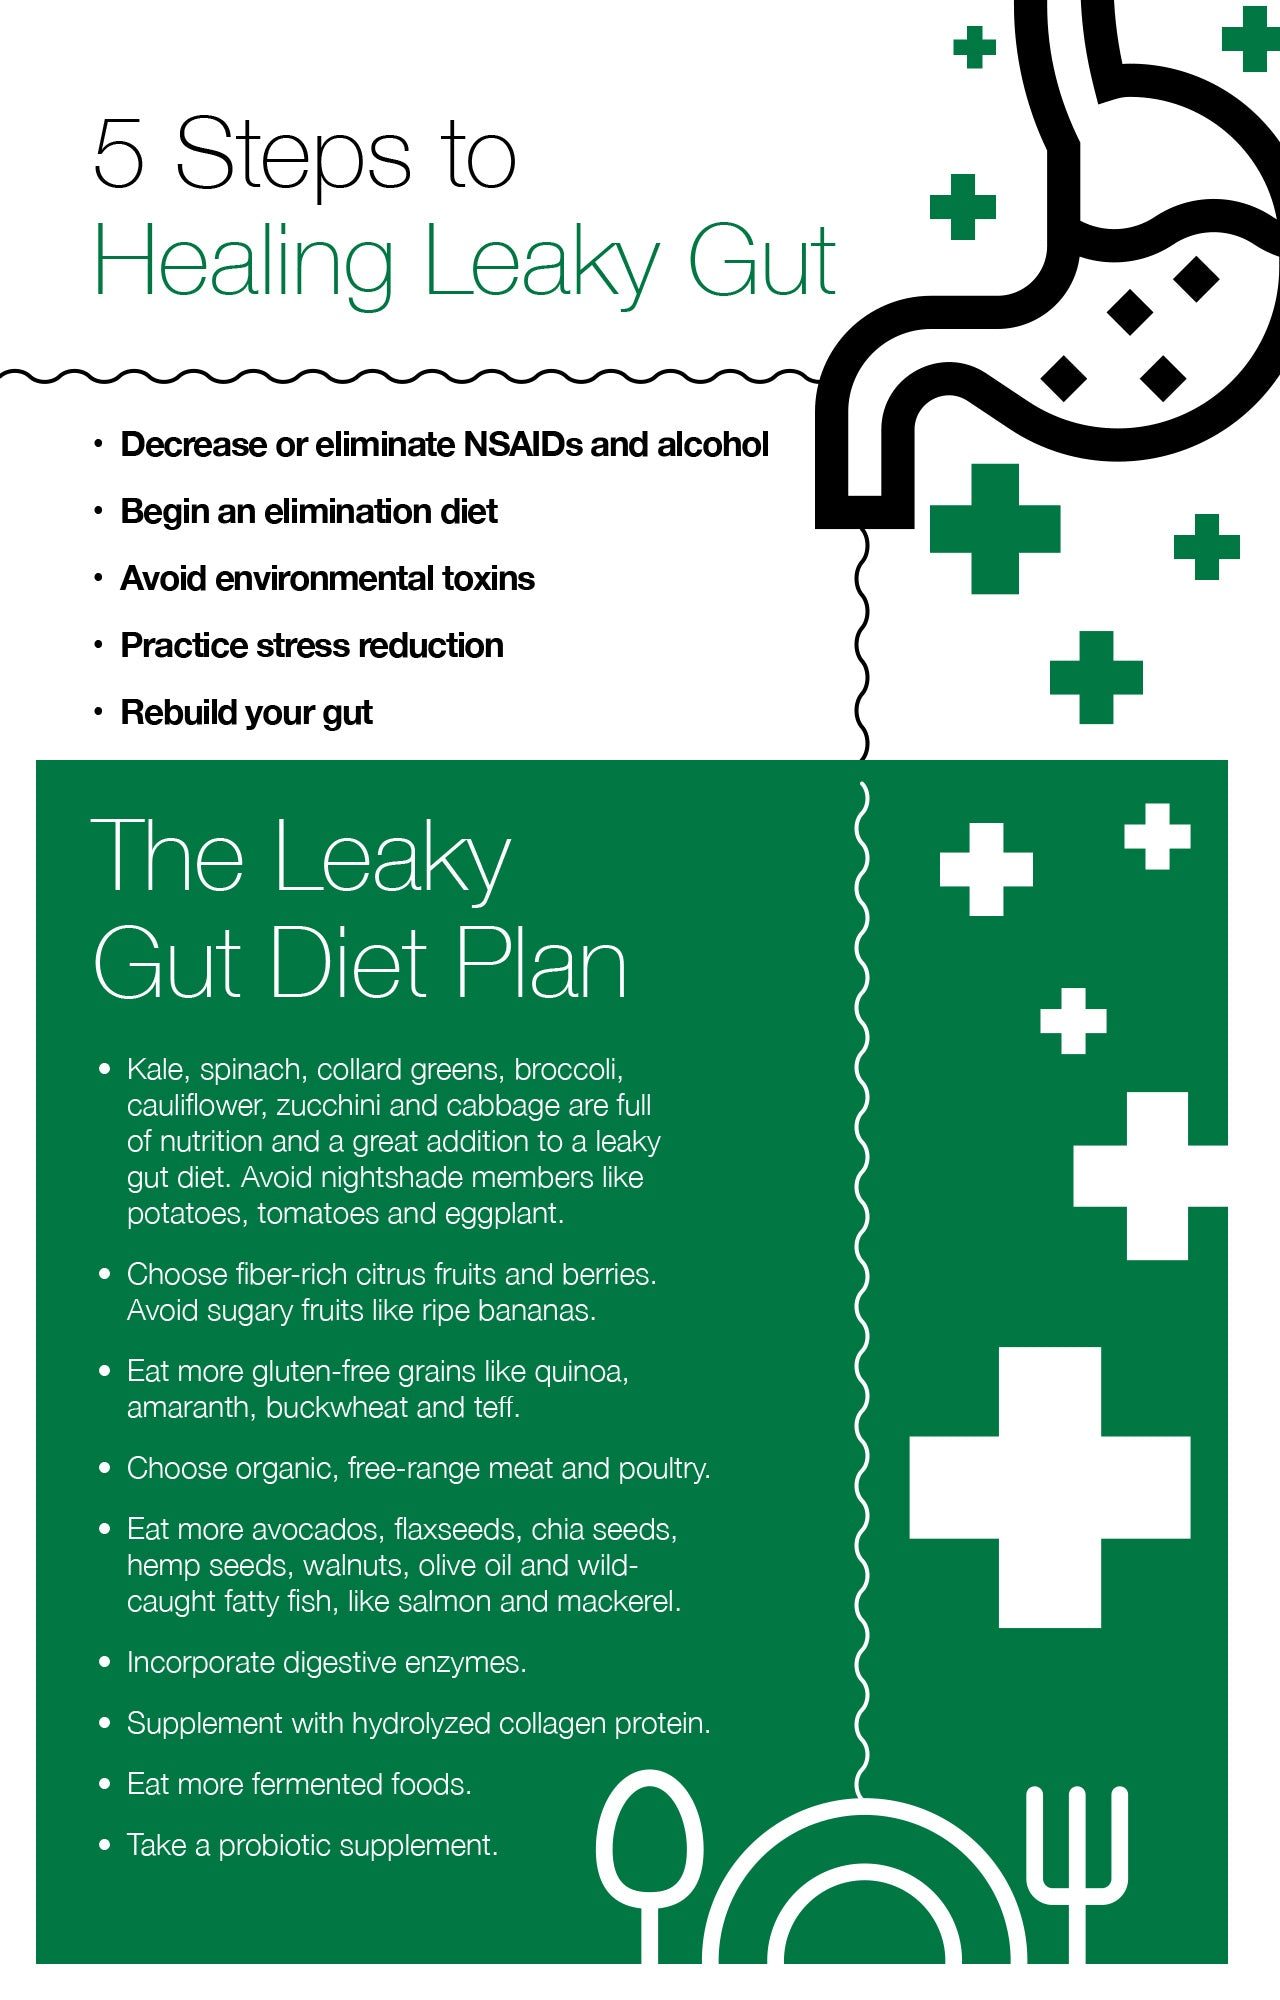 5 Steps to Healing Leaky Gut